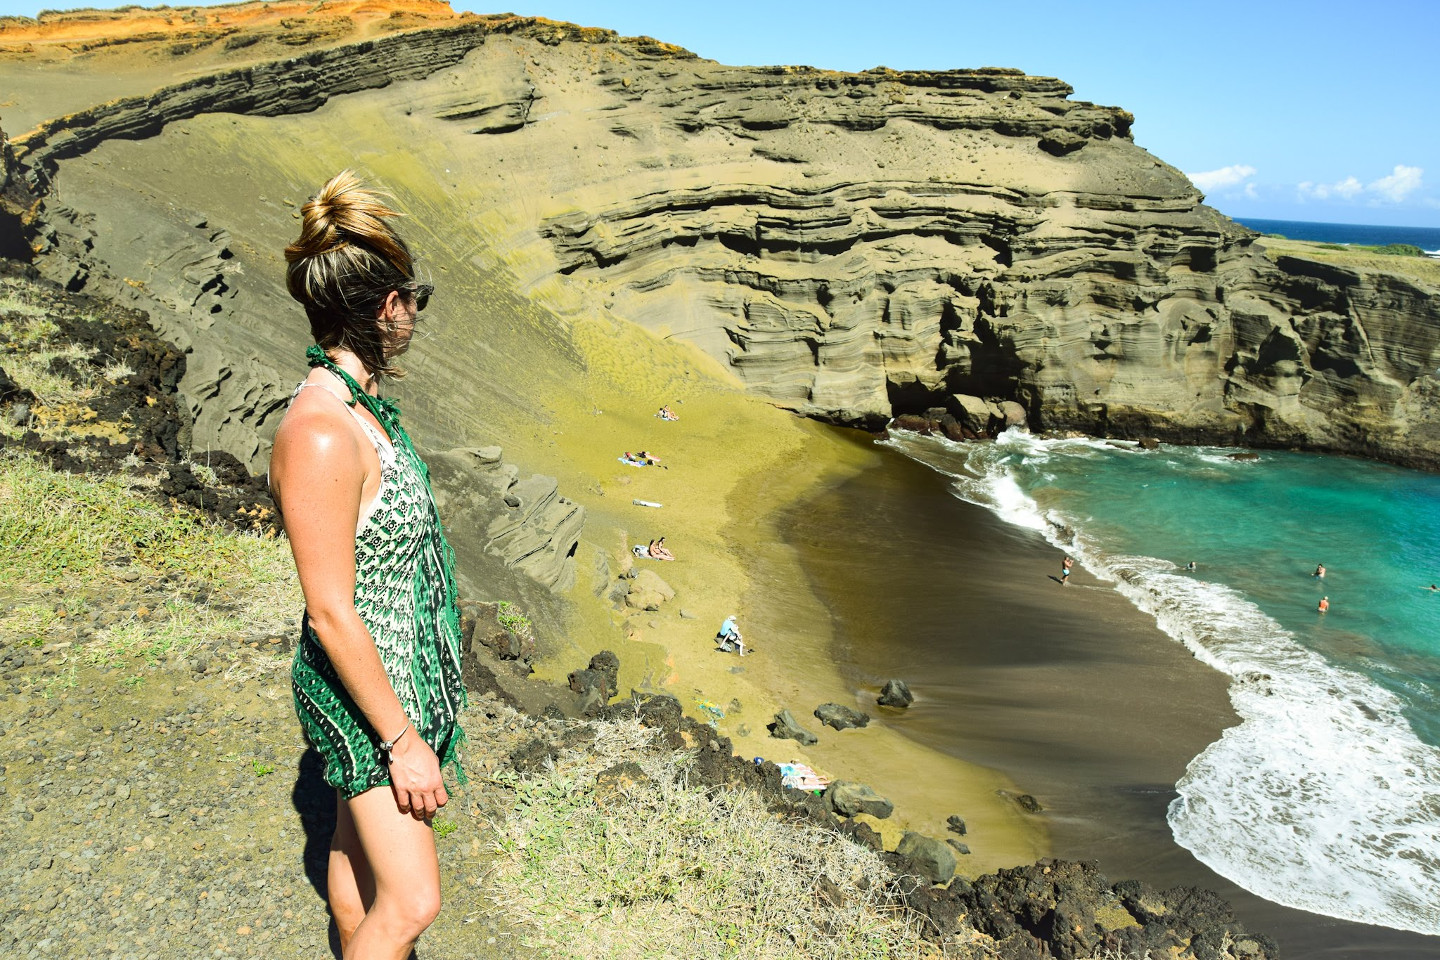 playa arena verde Big Island Hawaii